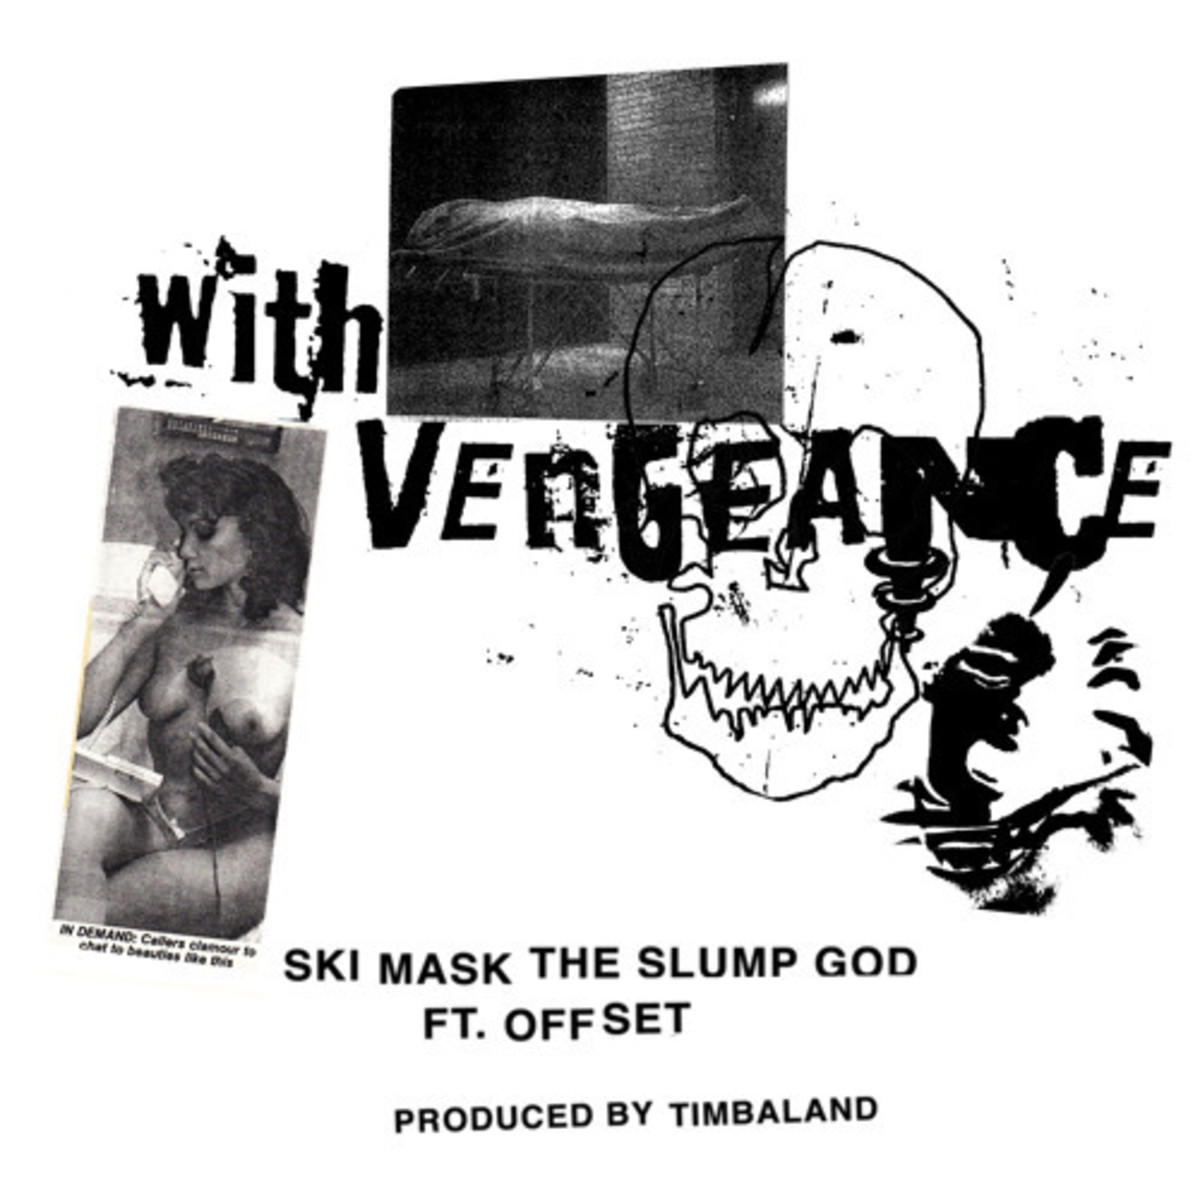 ski-mask-the-slump-god-with-vengeance.jpg